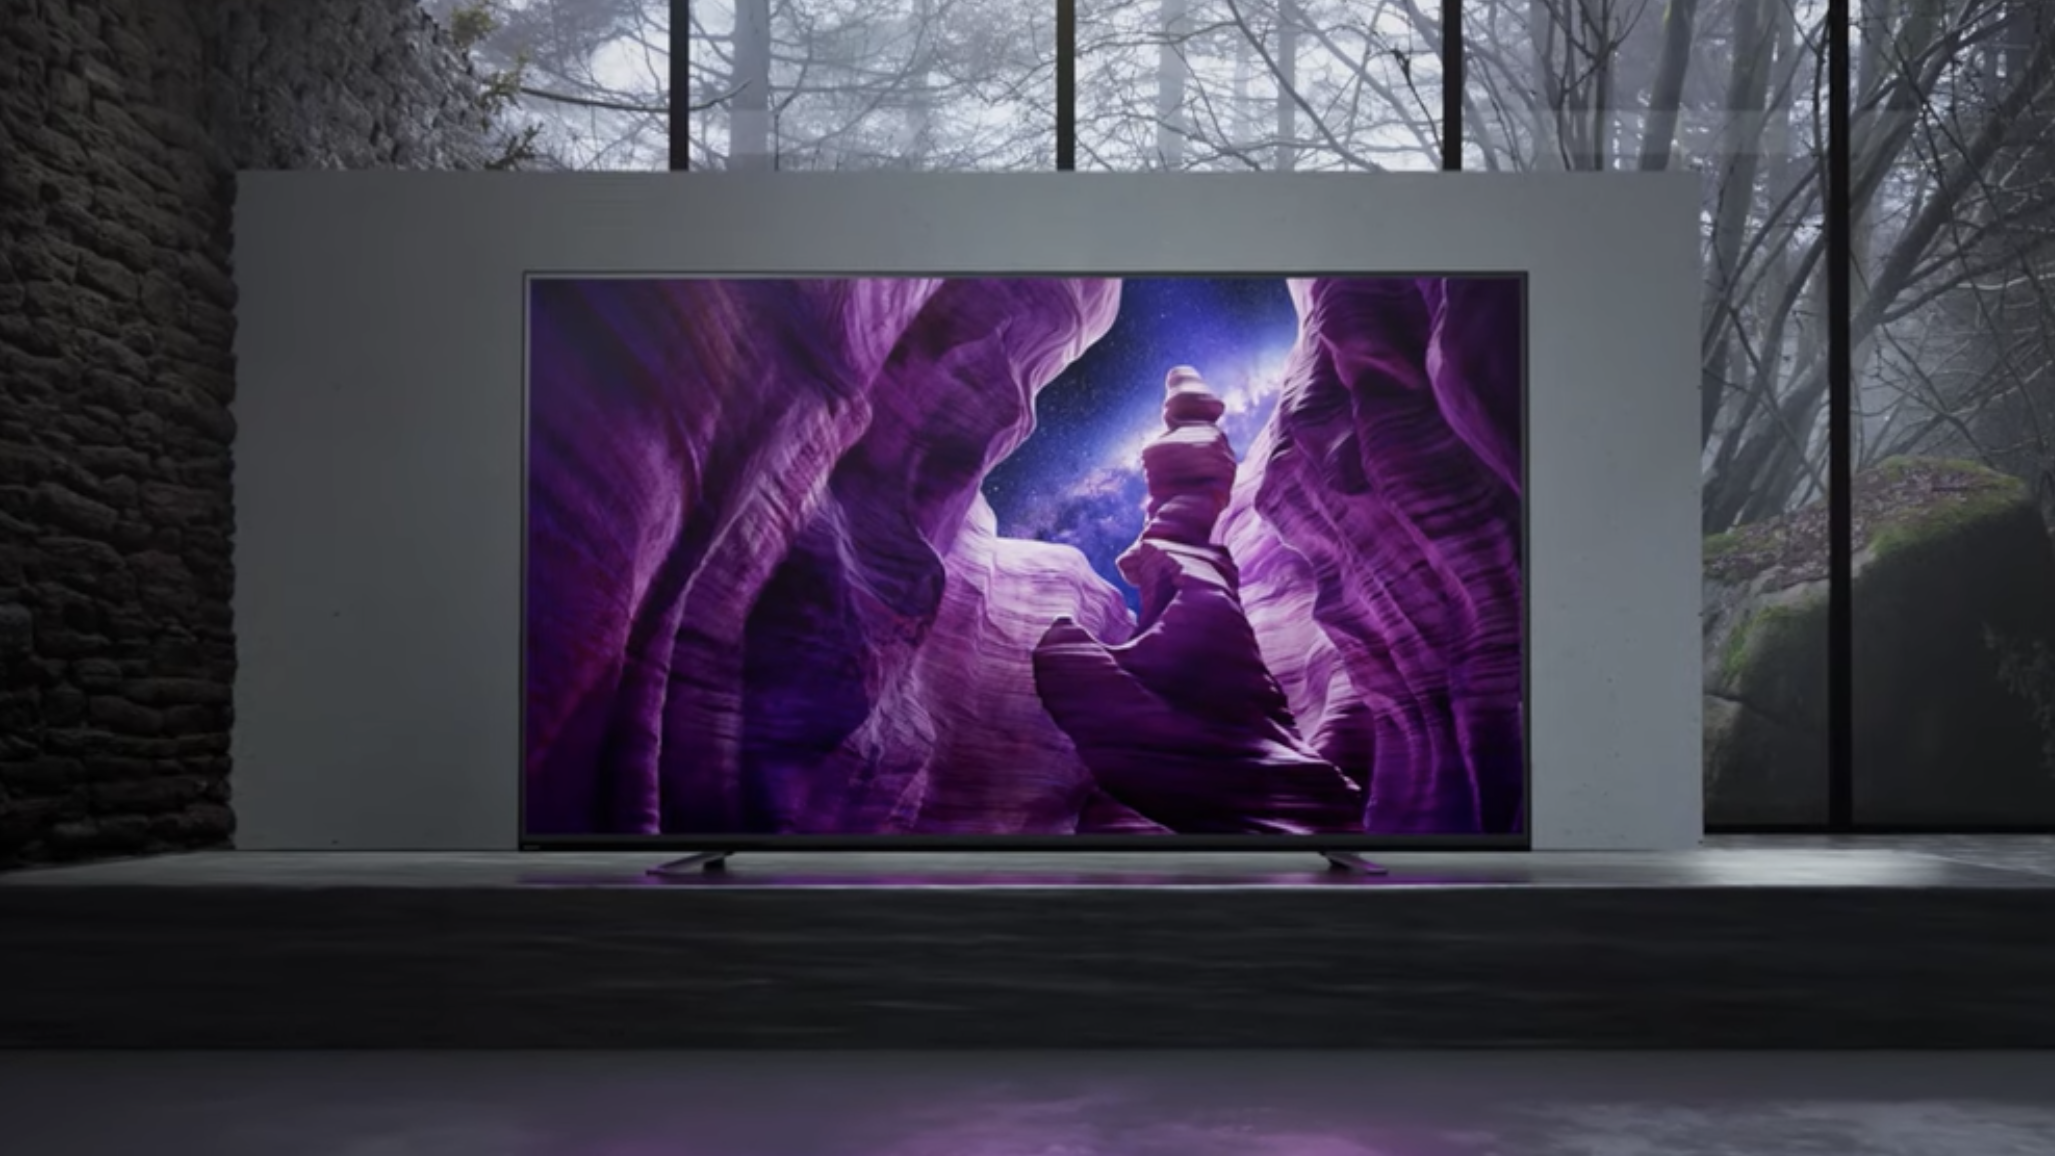 Best 65-inch TVs: Sony Bravia A8H OLED TV